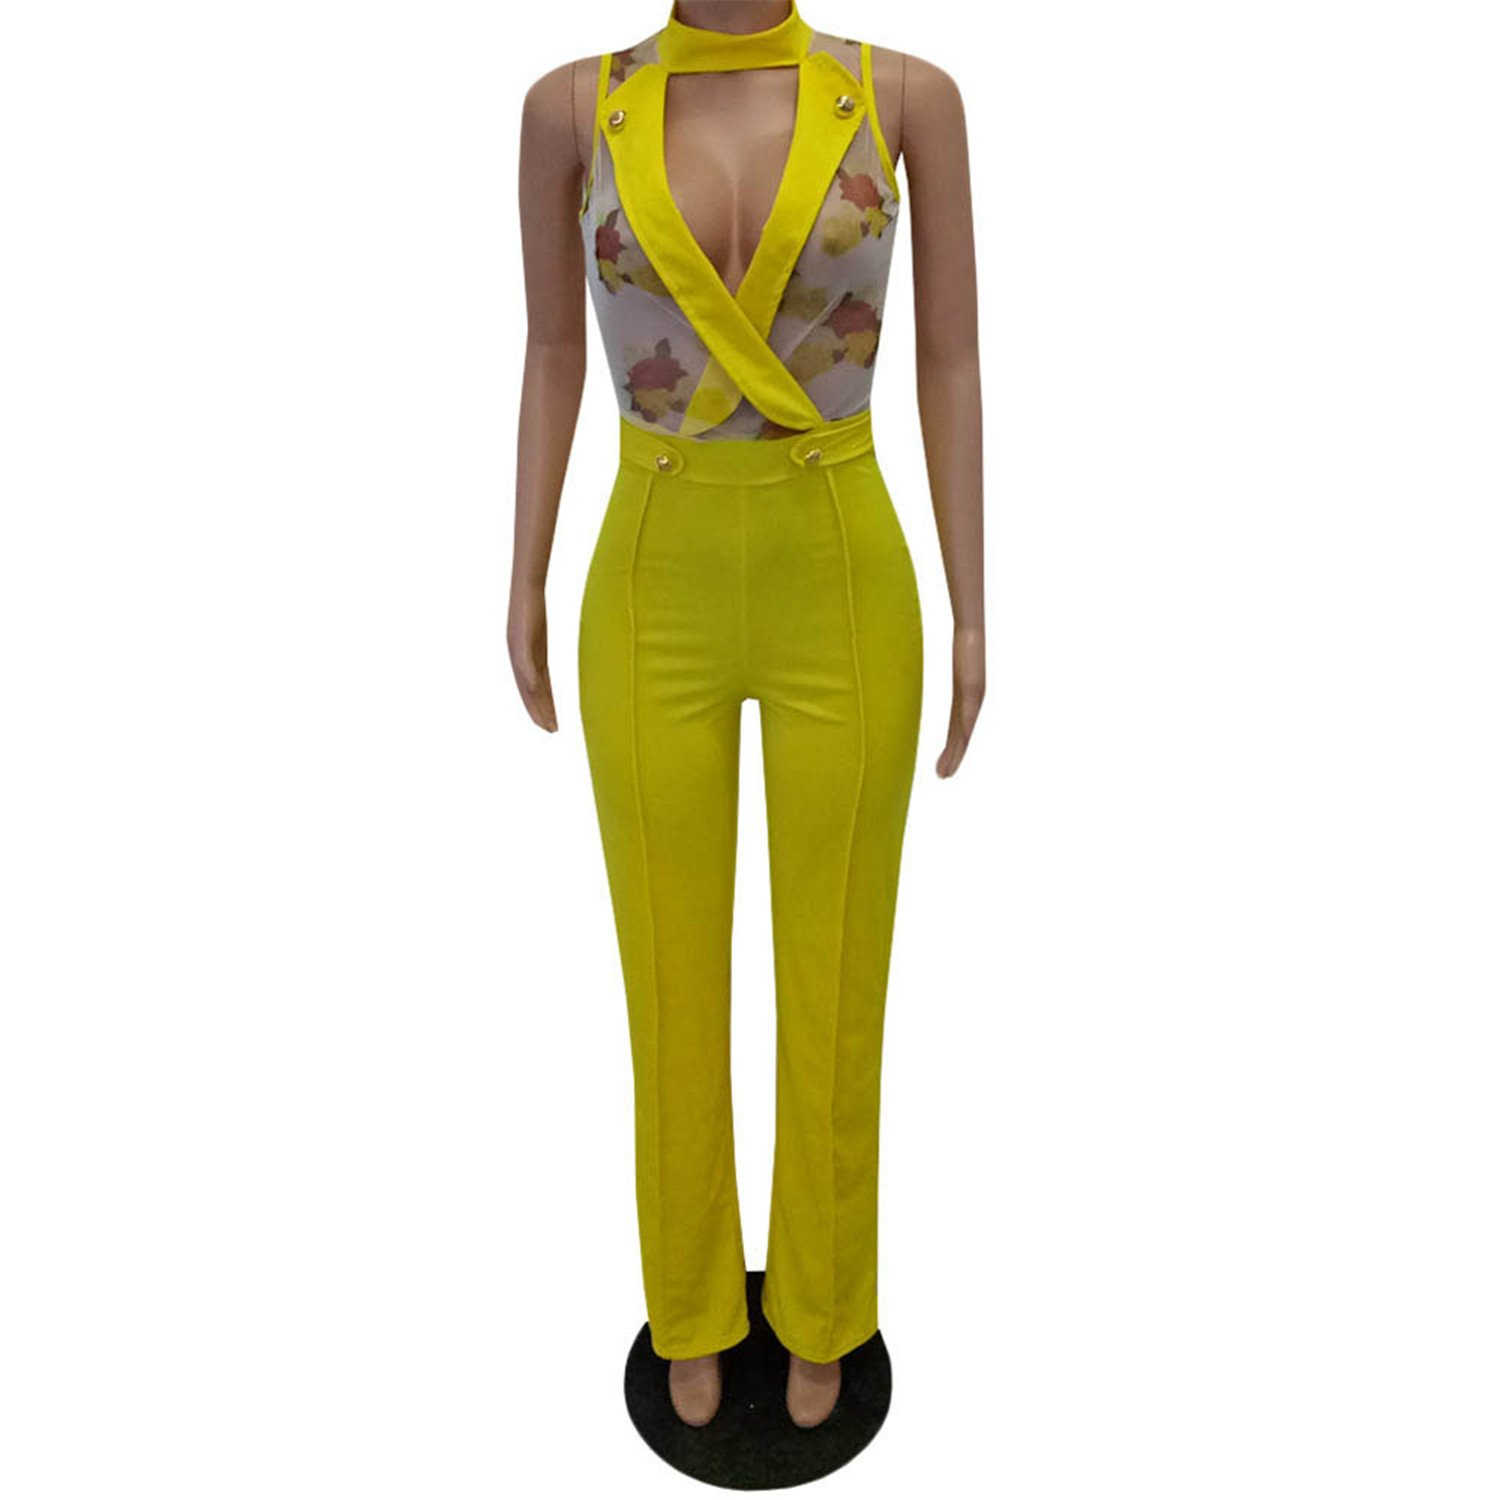 ylovego jumpsuits V-Neck Long Jumpsuit Club Yellow S